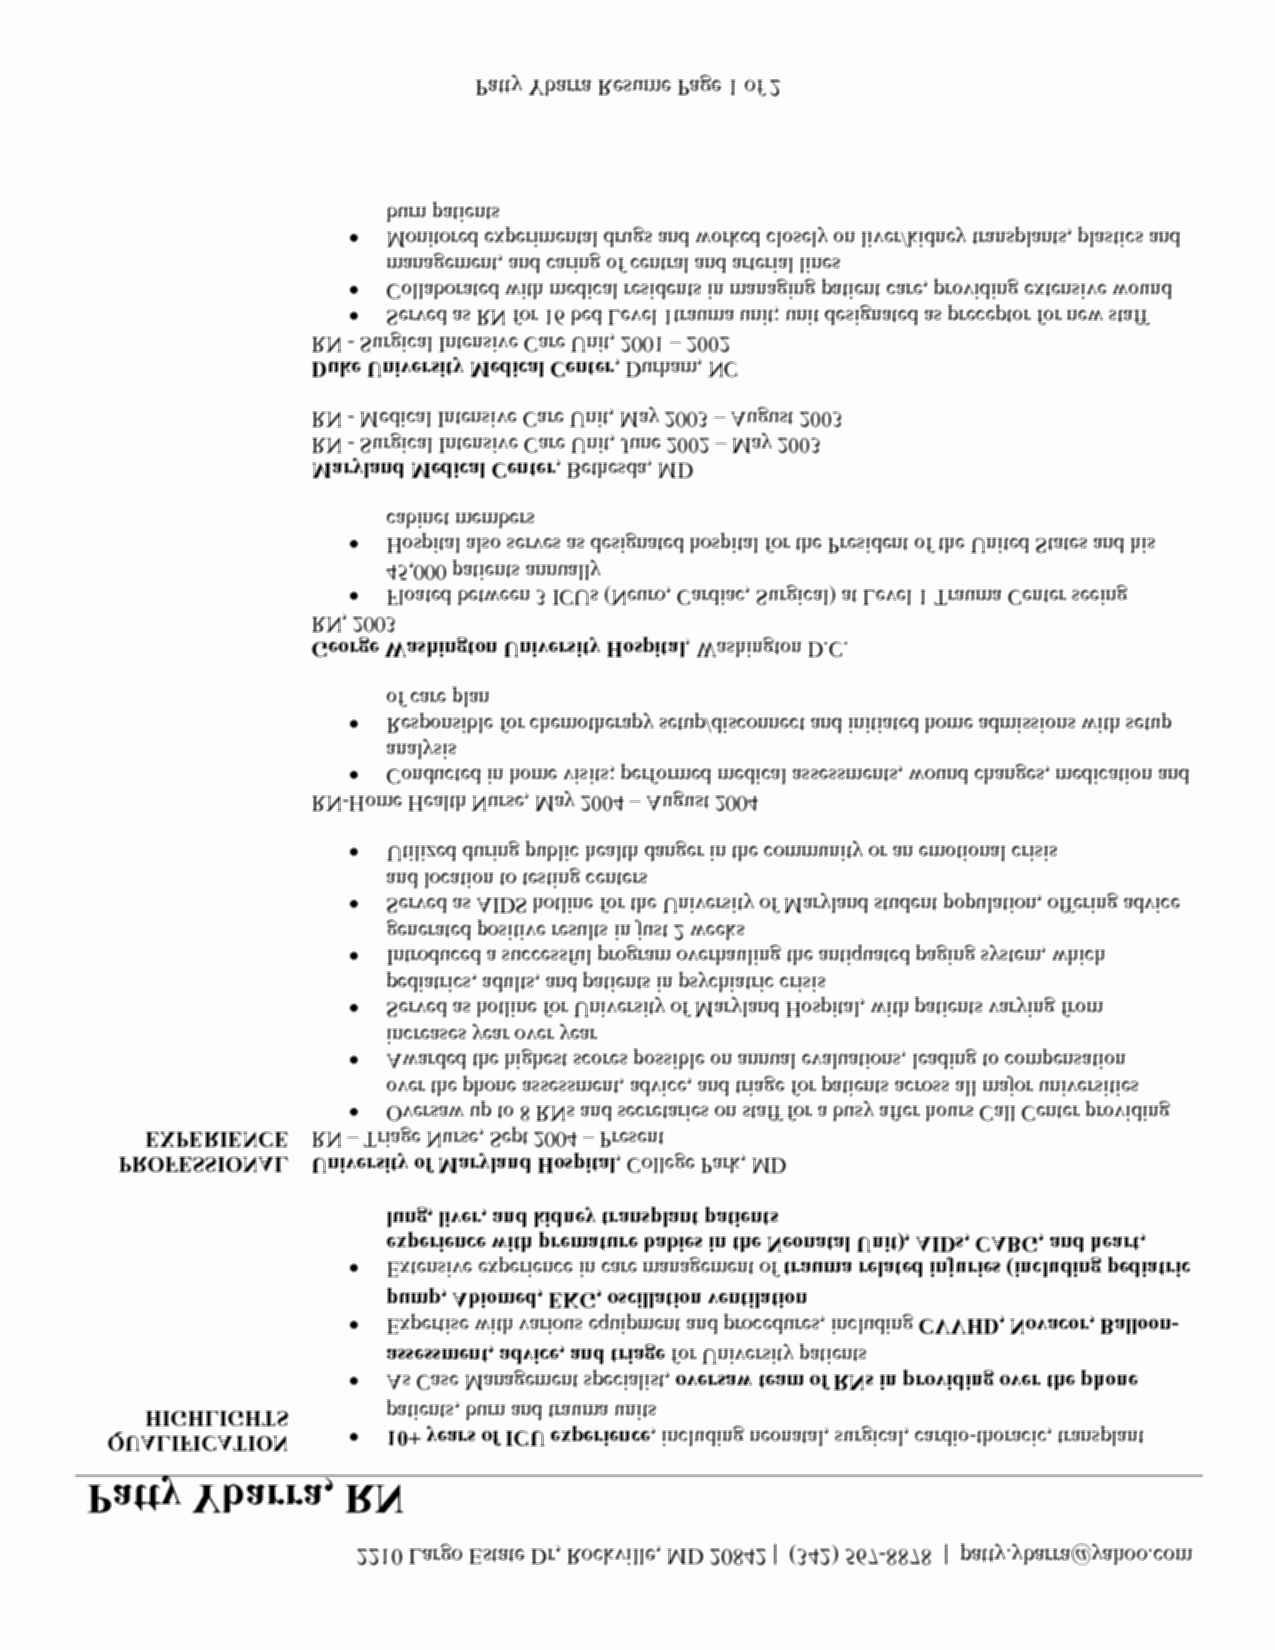 Lpn Resume Sample New Graduate - Lpn Sample Resumes New Graduates Reference Sample Nursing Resume